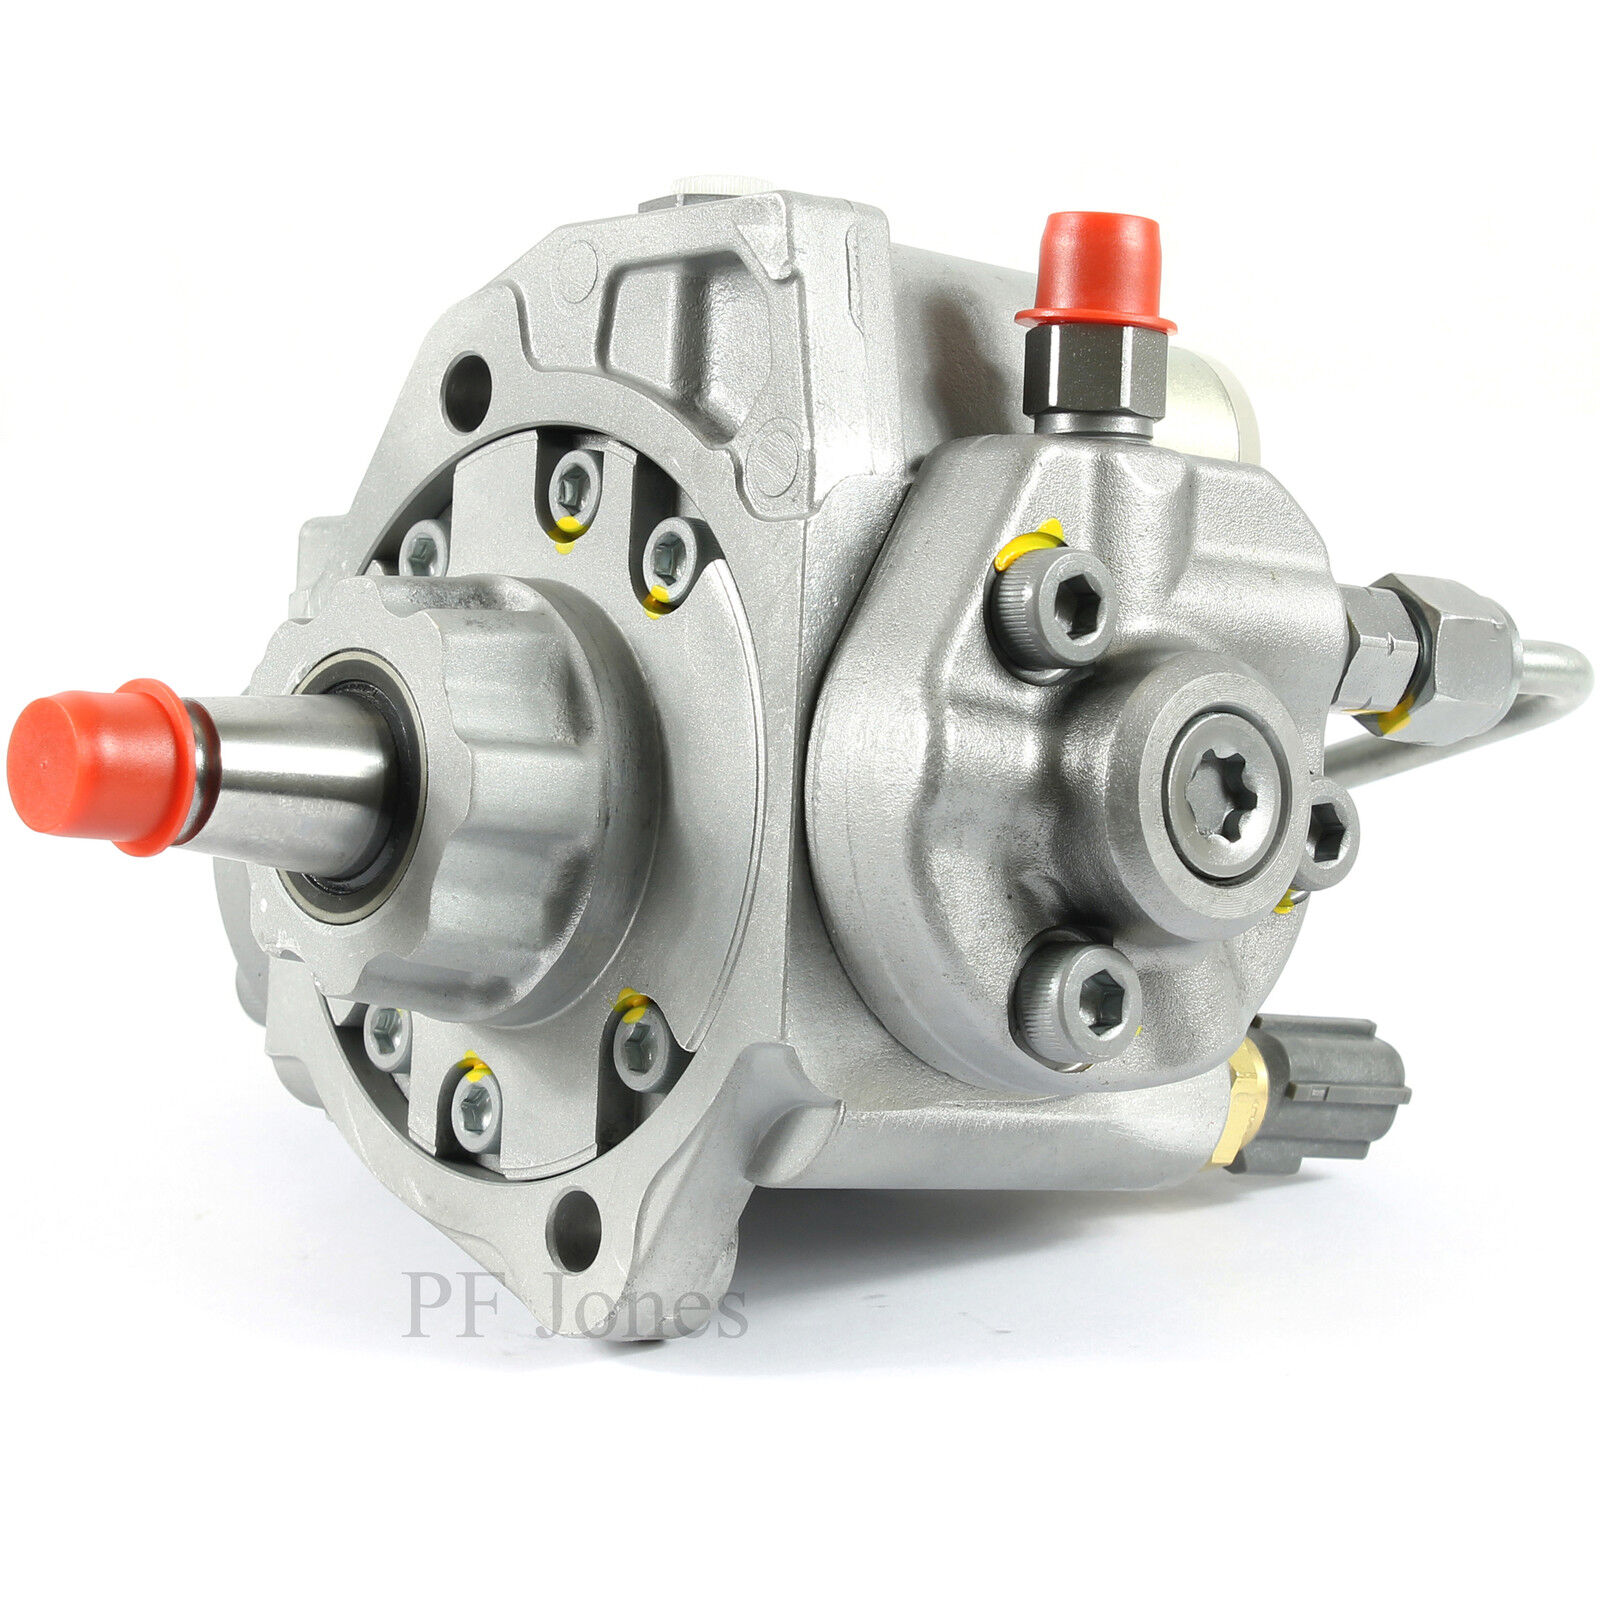 69b68677 Details about Reconditioned Denso Diesel Fuel Pump 294000-0503 - £60 Cash  Back - See Listing